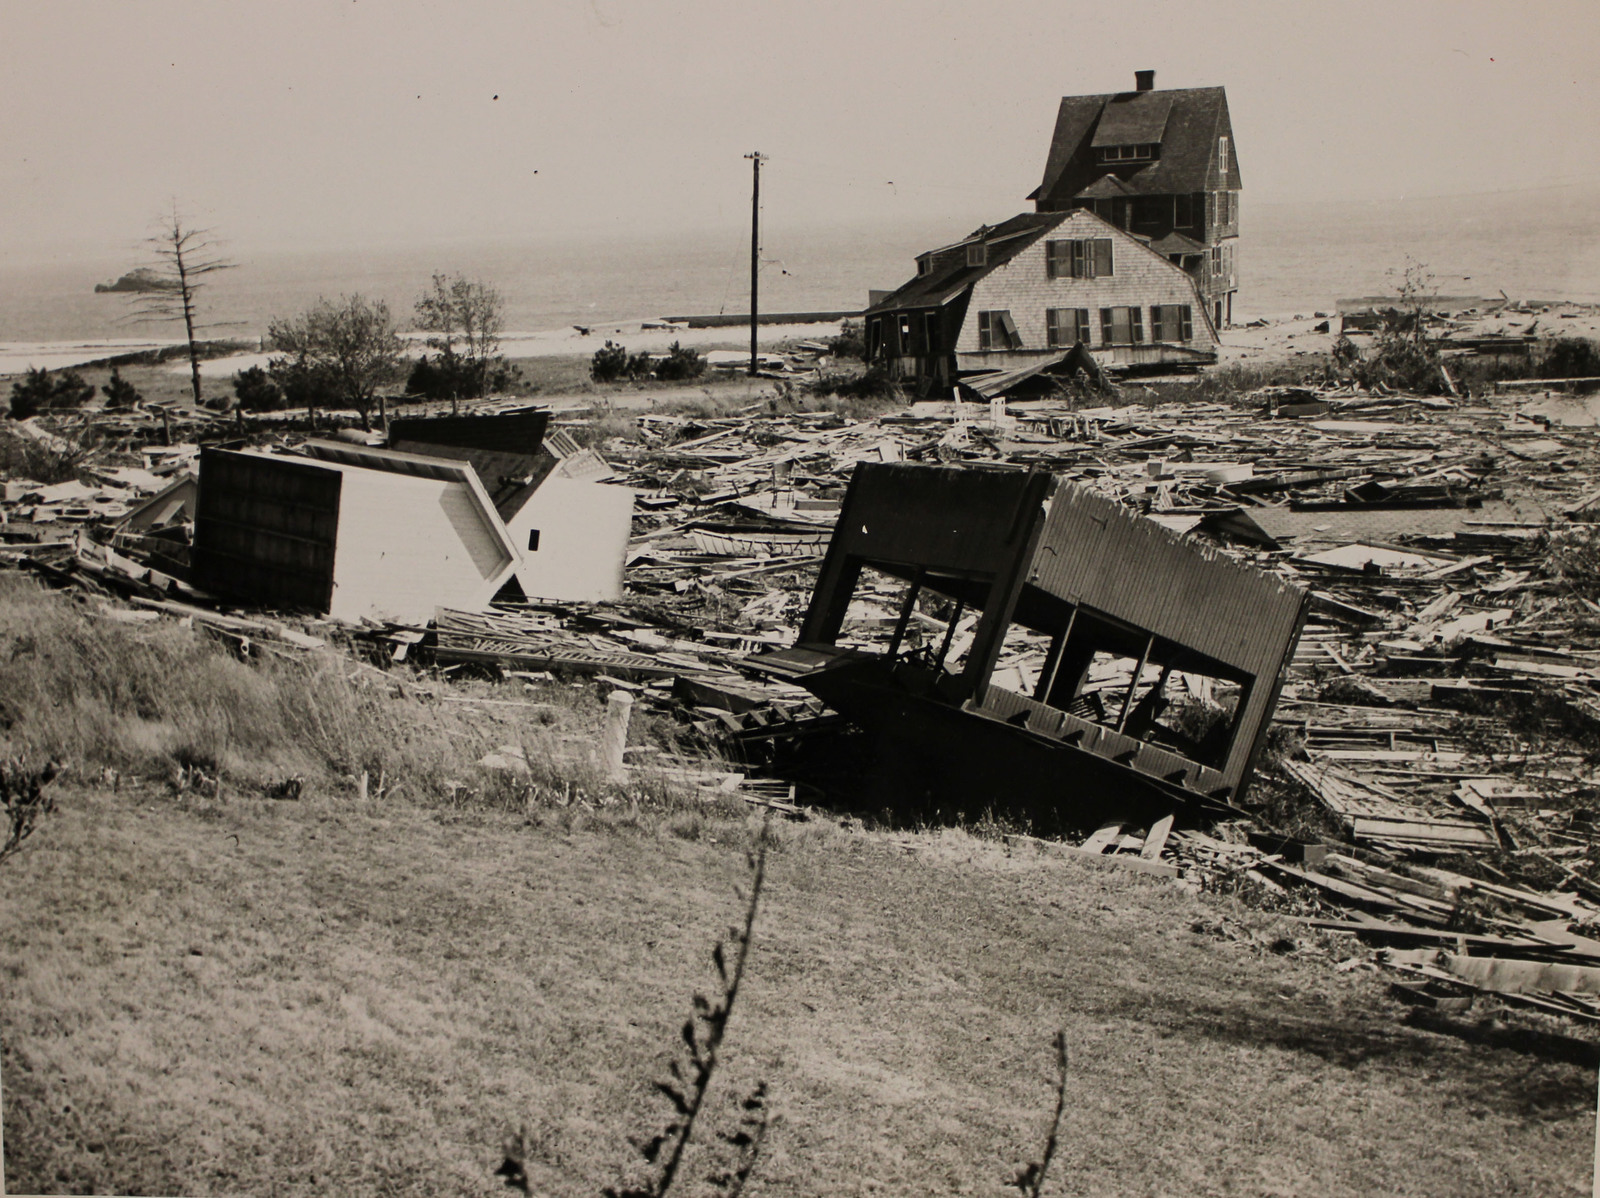 Damage at Crescent Beach in East Lyme, Connecticut from the Hurricane of 1938